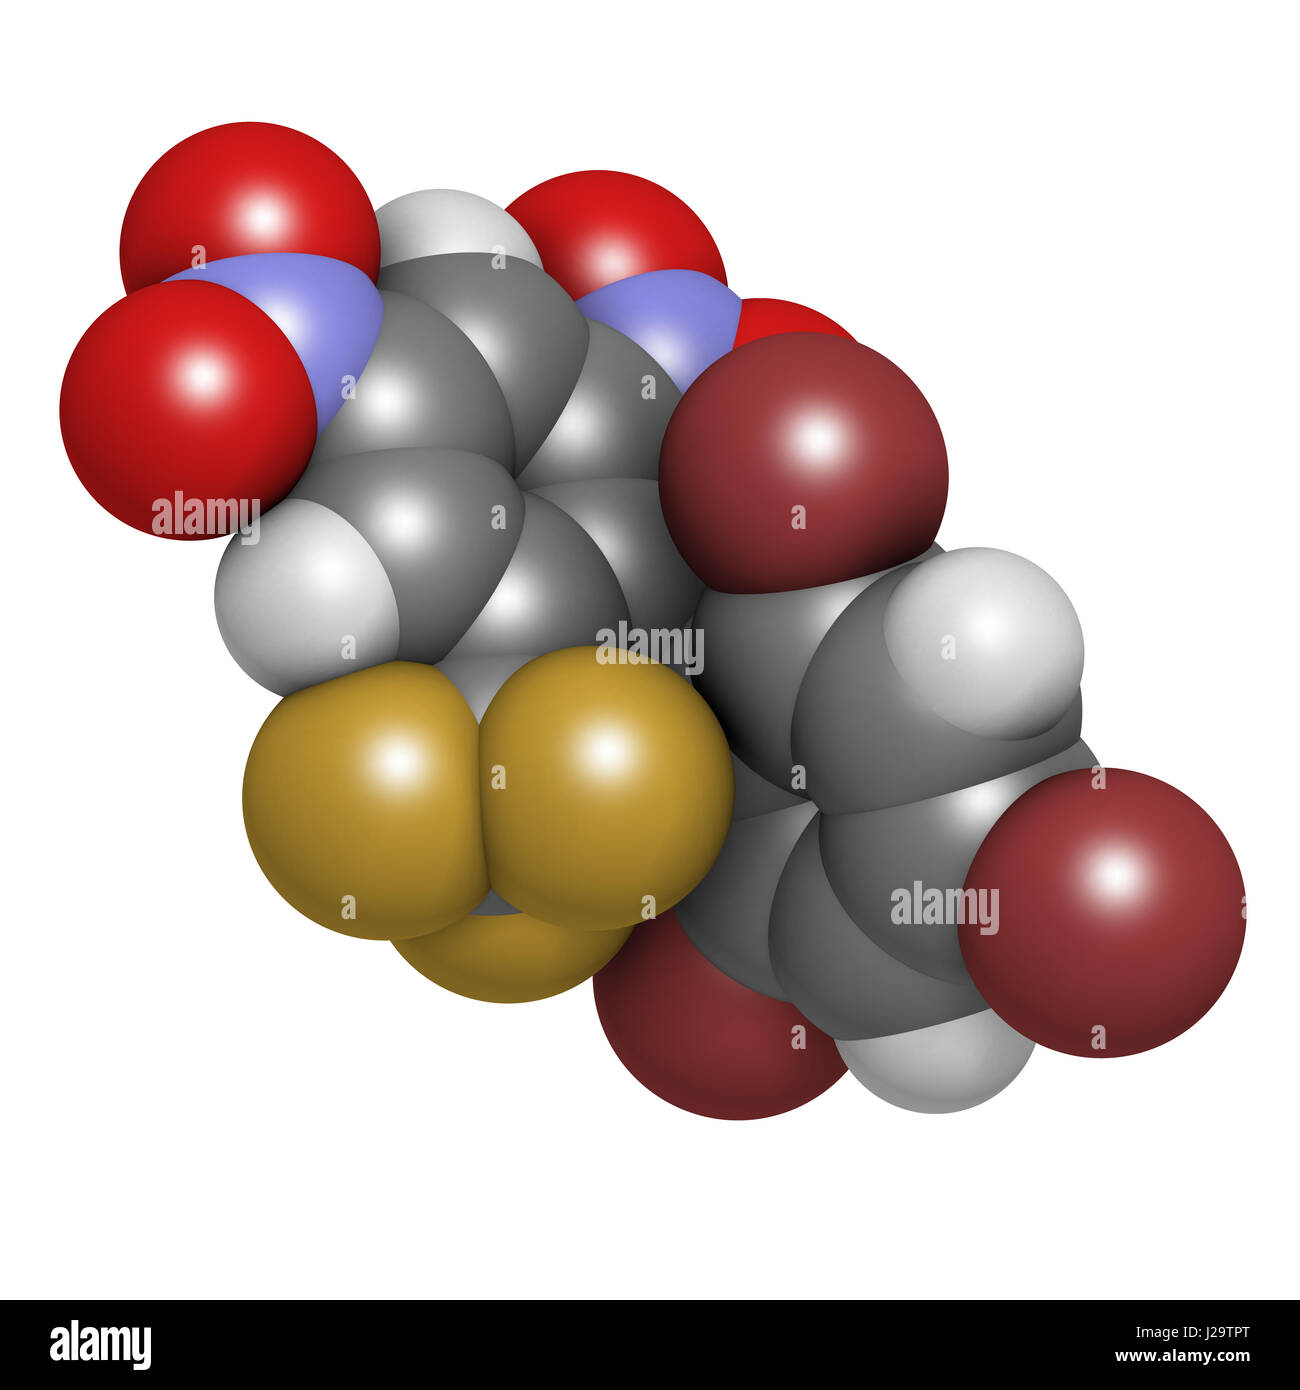 adp molecule diagram labeled what is a spider atp stock photos and images alamy